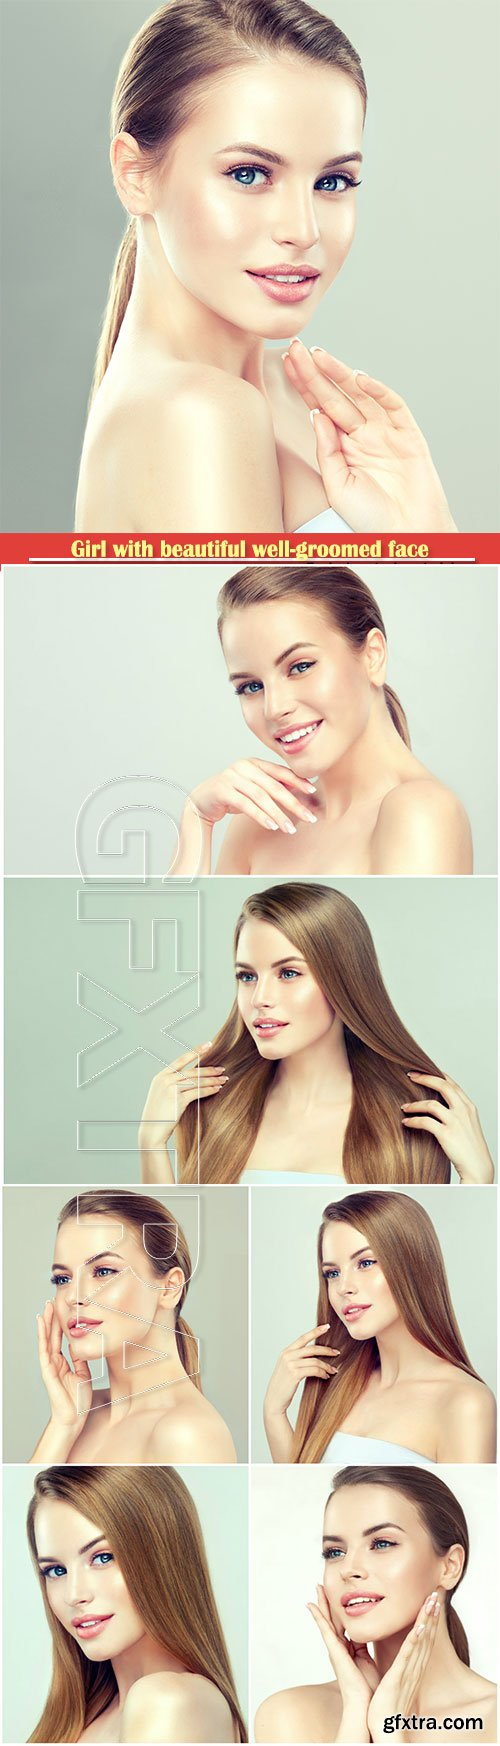 Girl with beautiful well-groomed face